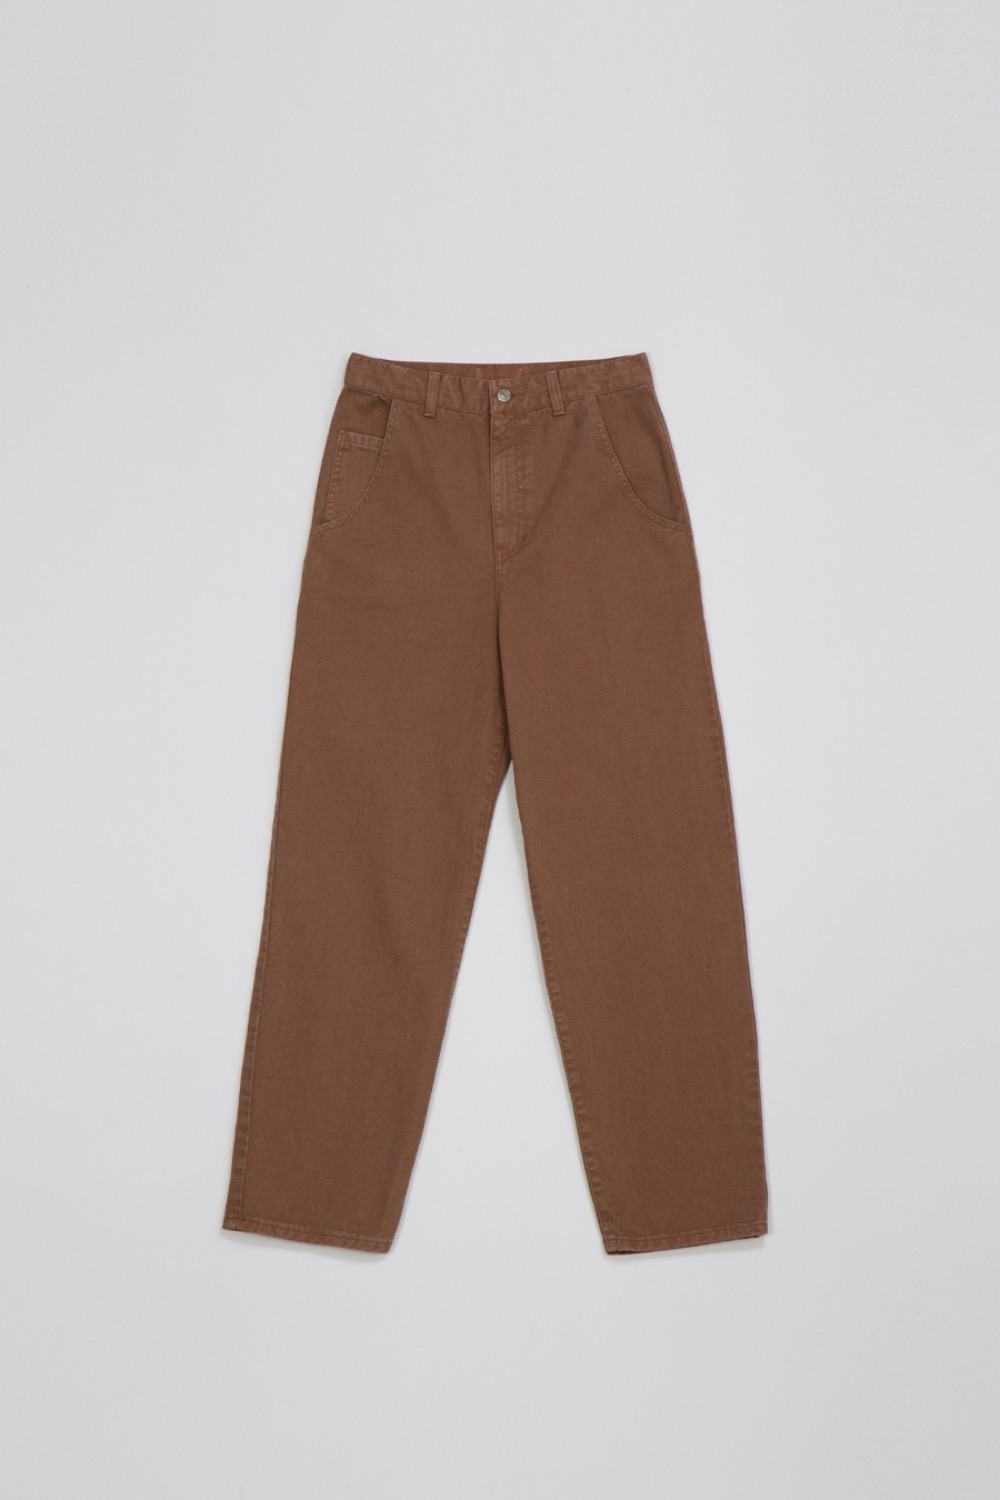 GARMENT DYED HIGHRISE JEAN - MOCHA COTTON